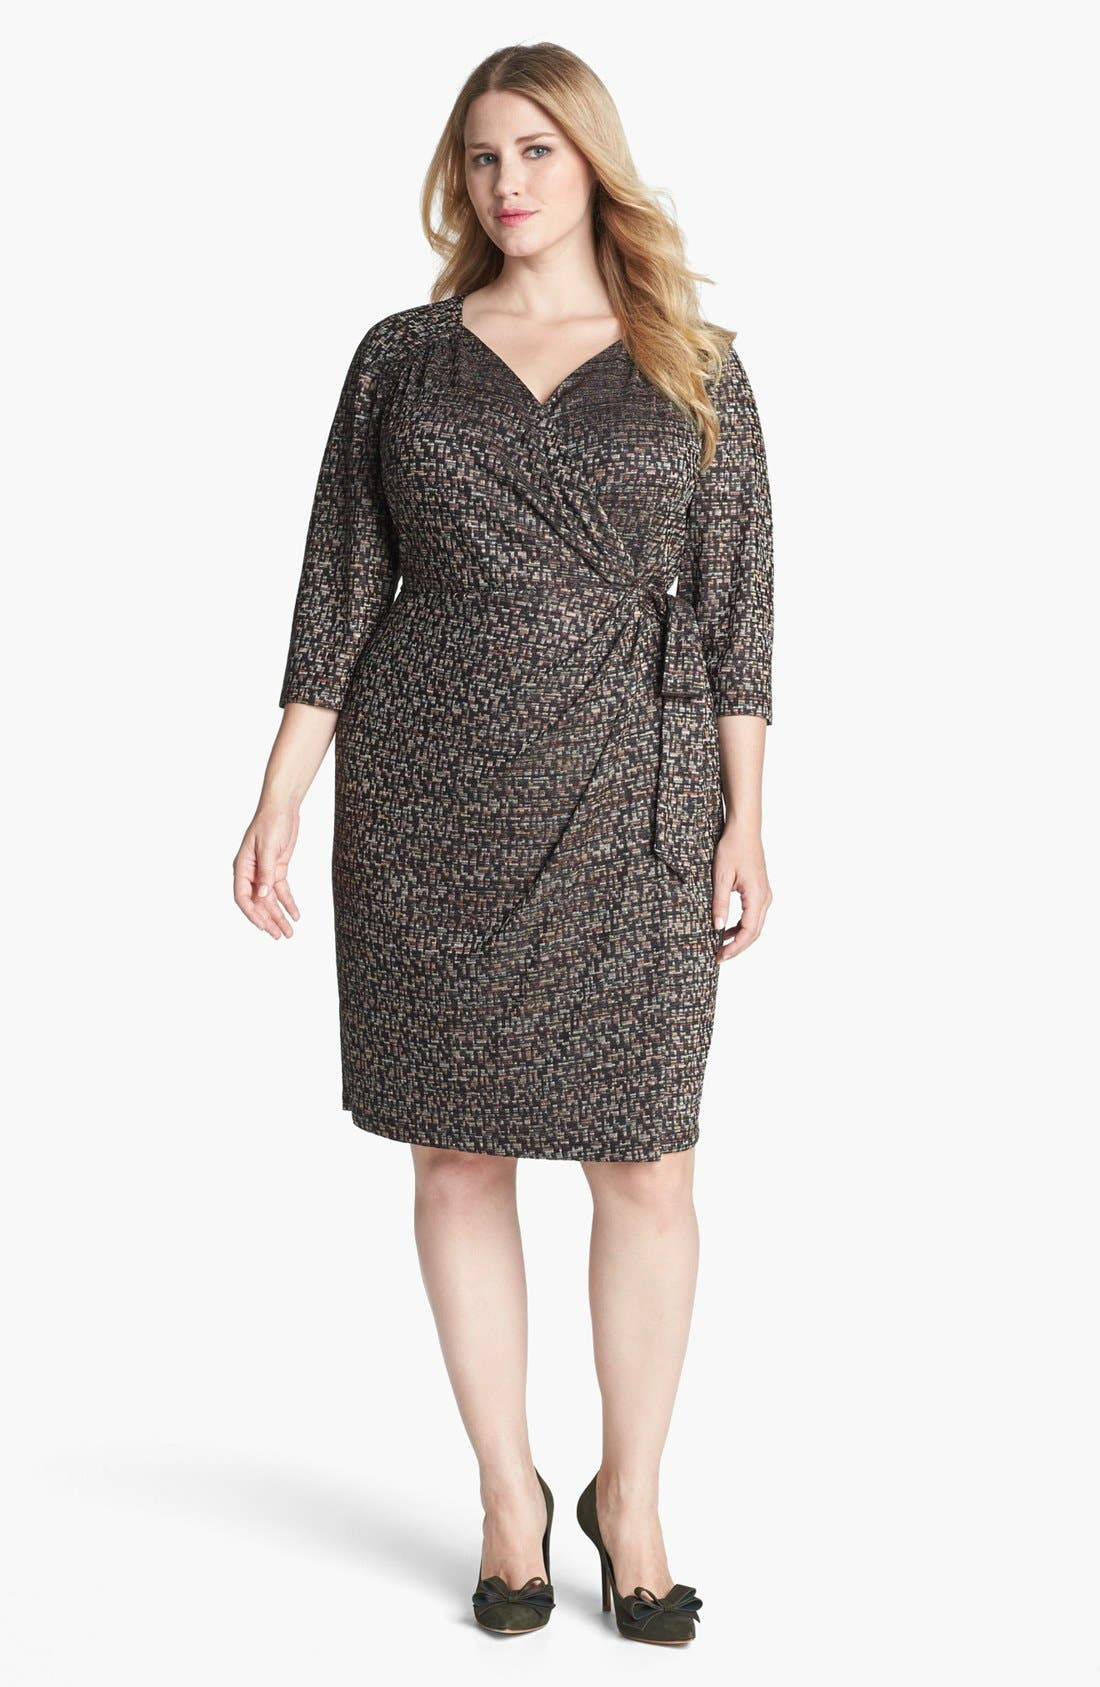 Alternate Image 1 Selected - Ivy & Blu Textured Faux Wrap Dress (Plus Size)